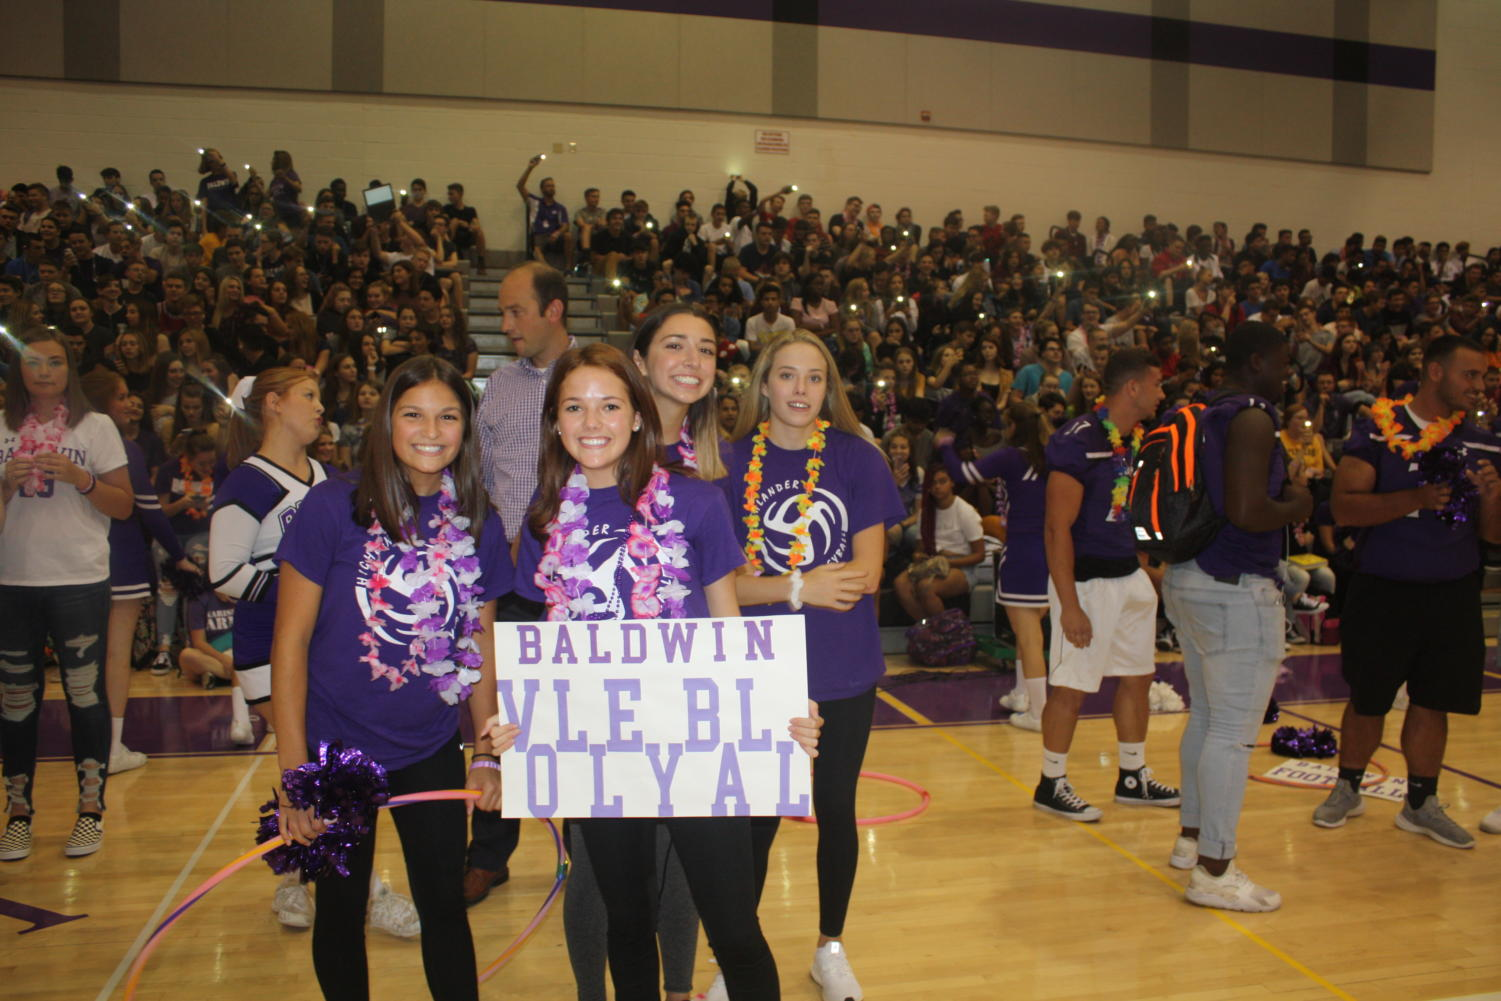 Girls volleyball team poses for a picture at the Fall pep rally.